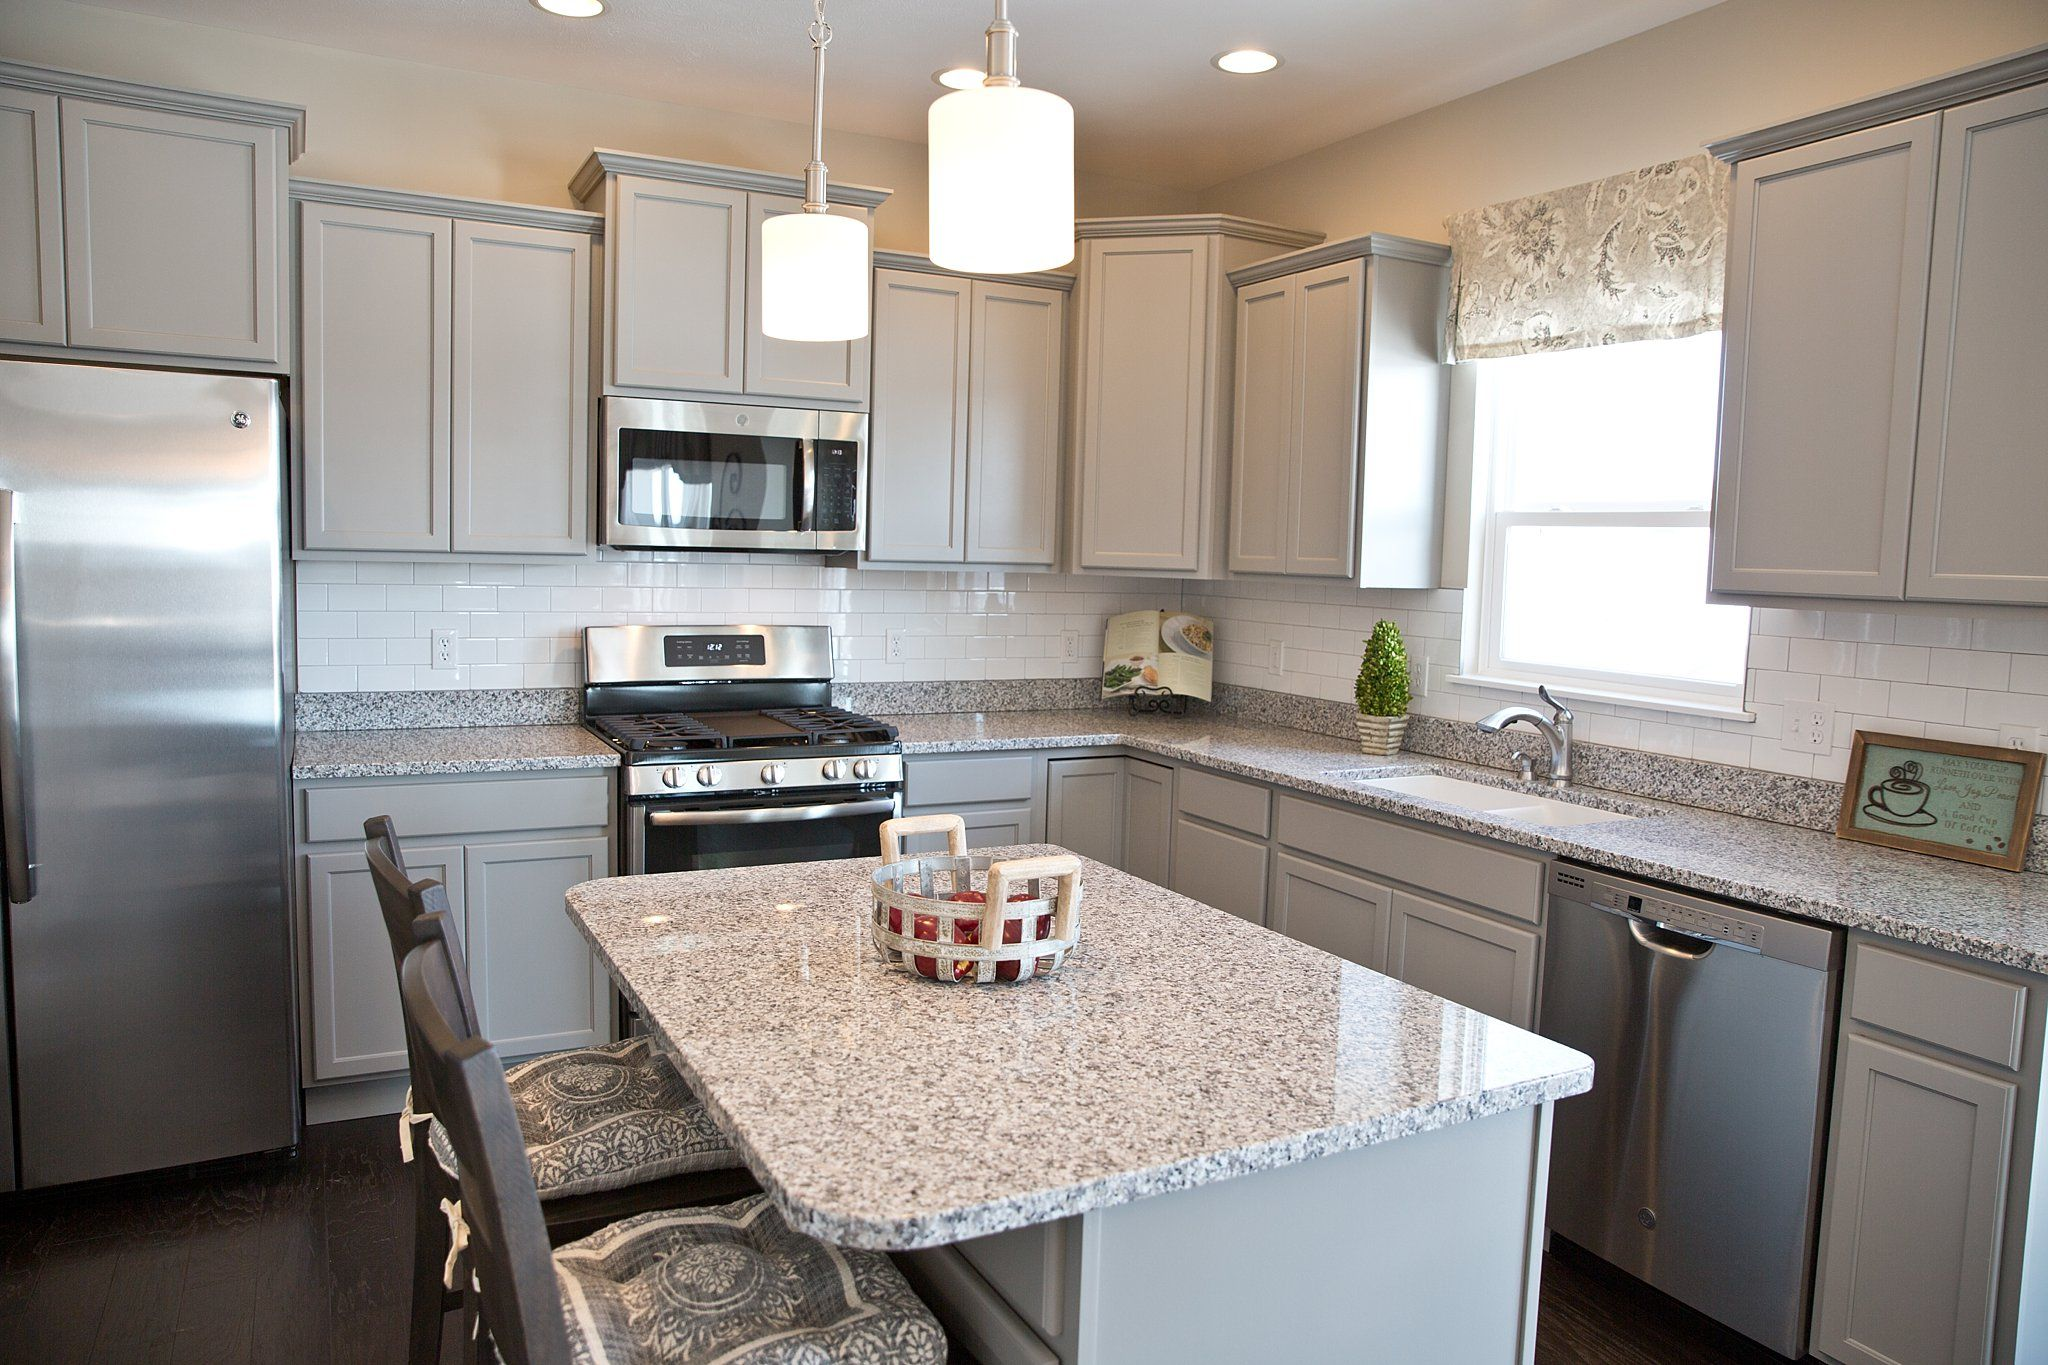 Kitchen featured in the Linden By Olthof Homes in Indianapolis, IN